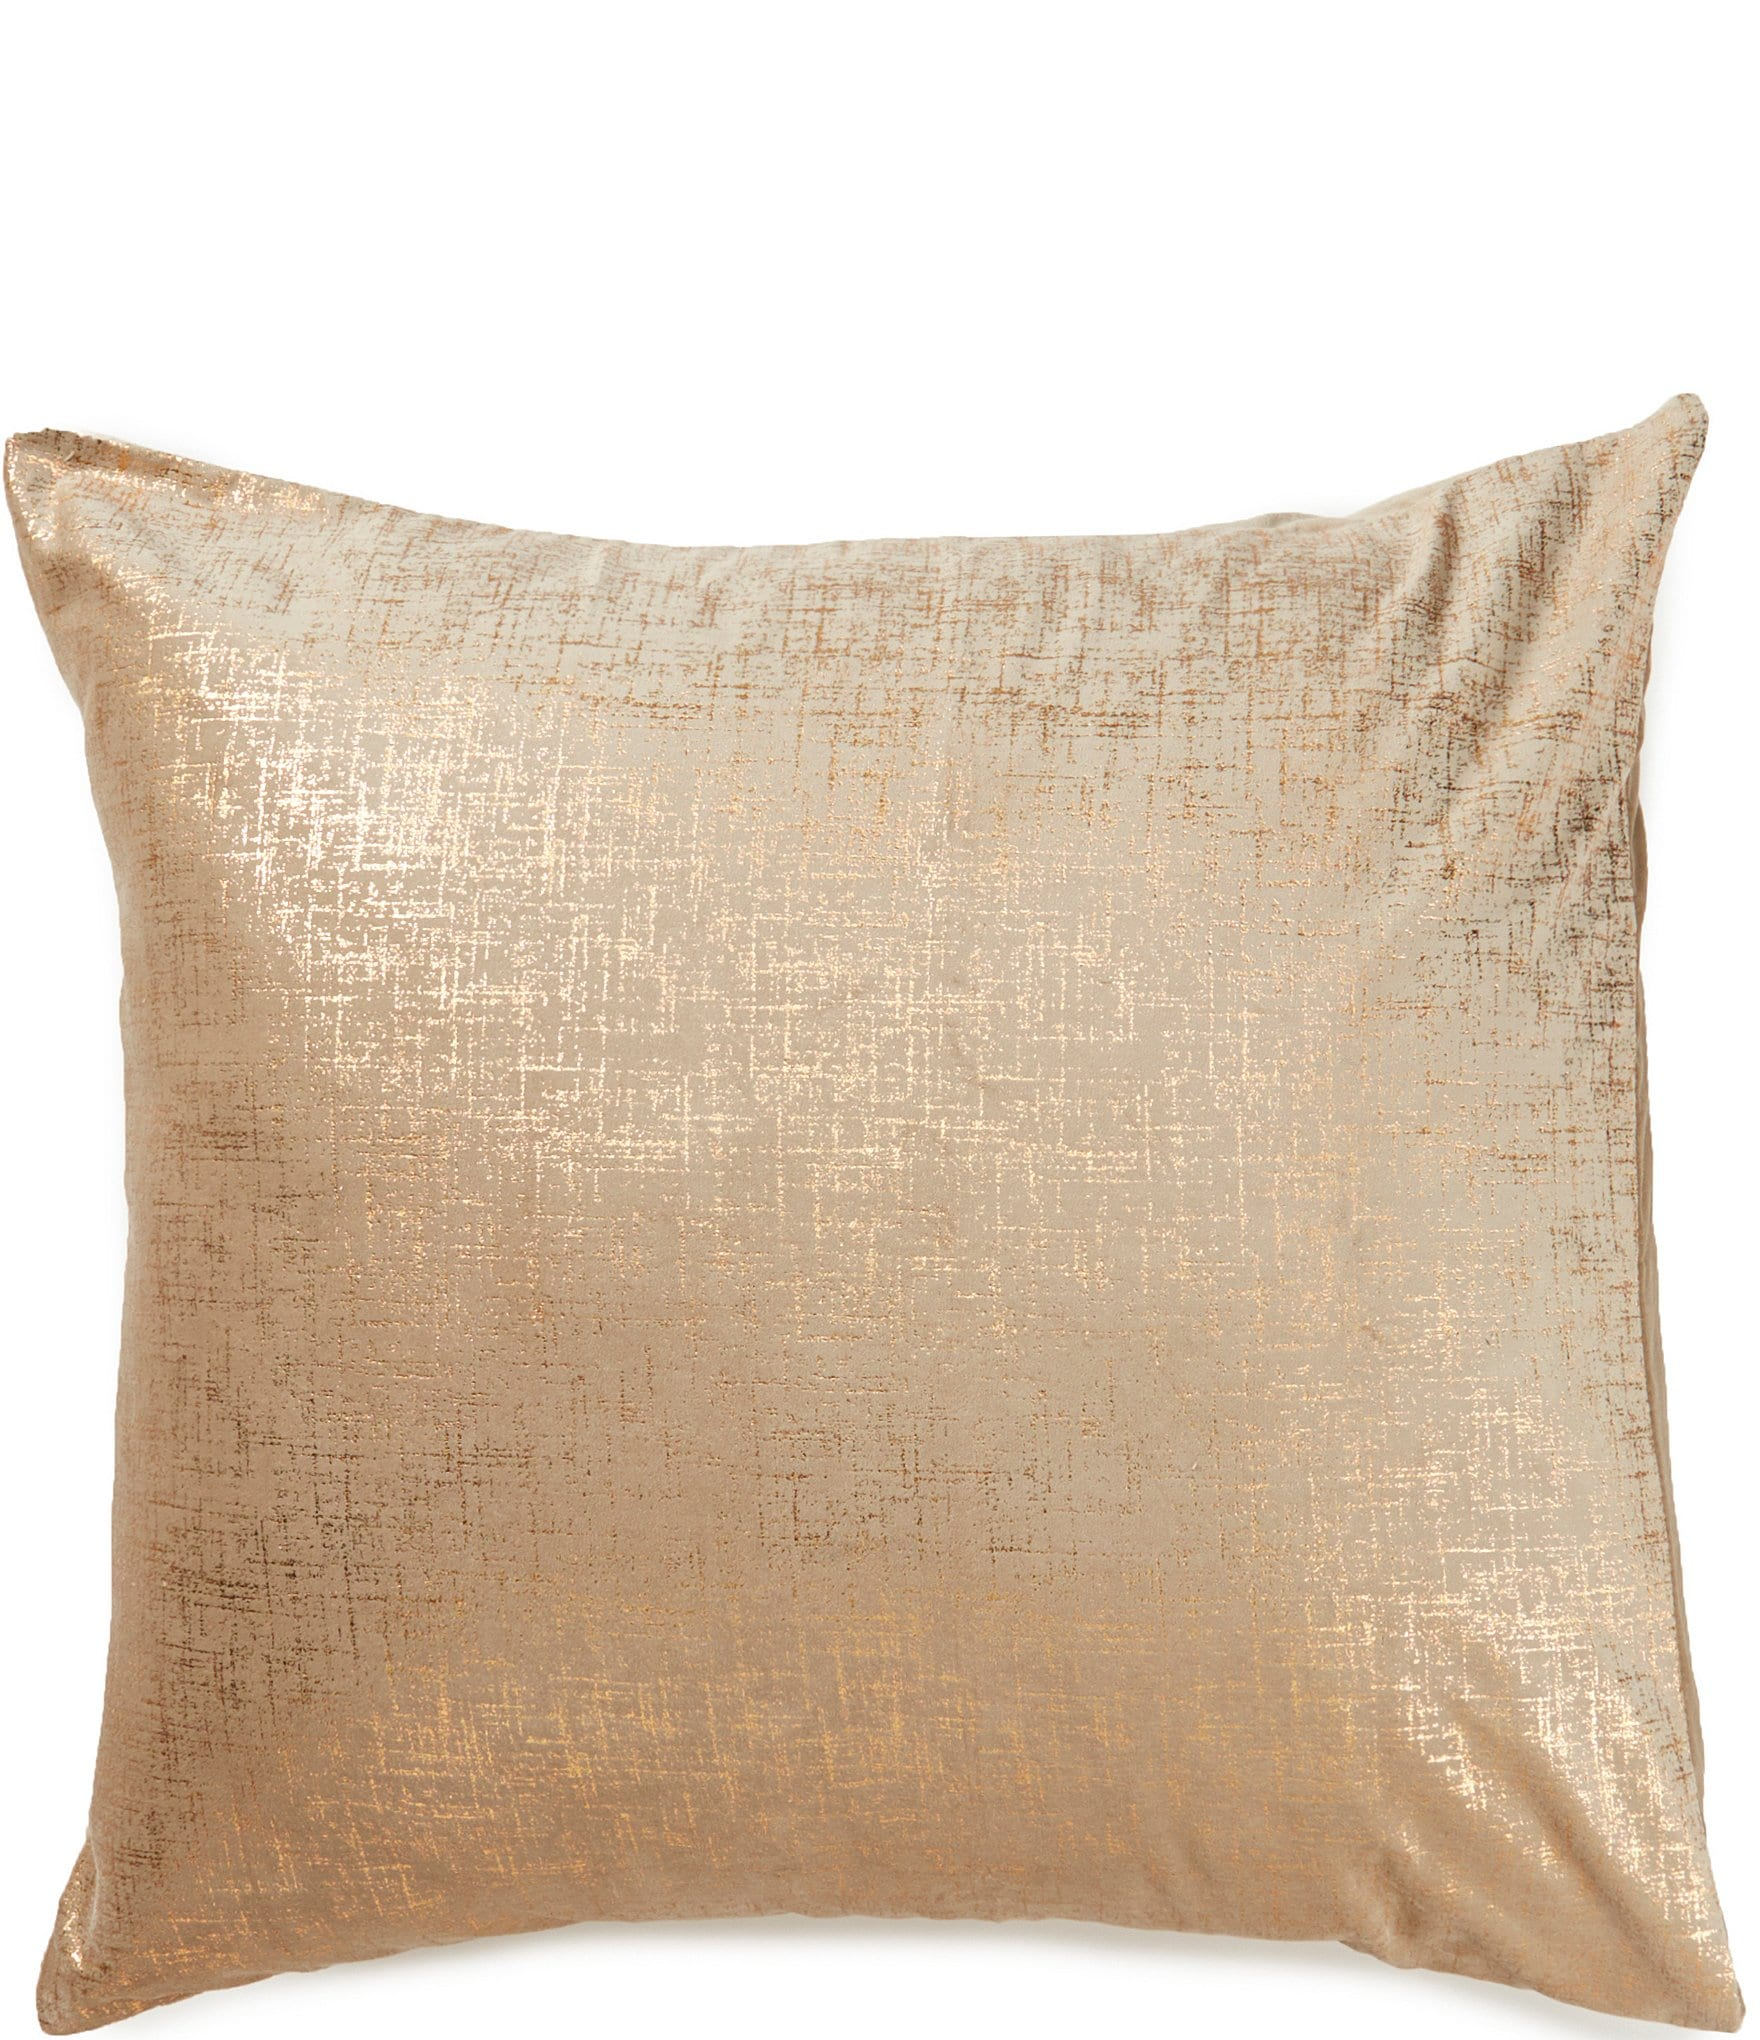 Highline Bedding Co Madrid Metallic Velvet Euro Sham Dillard S